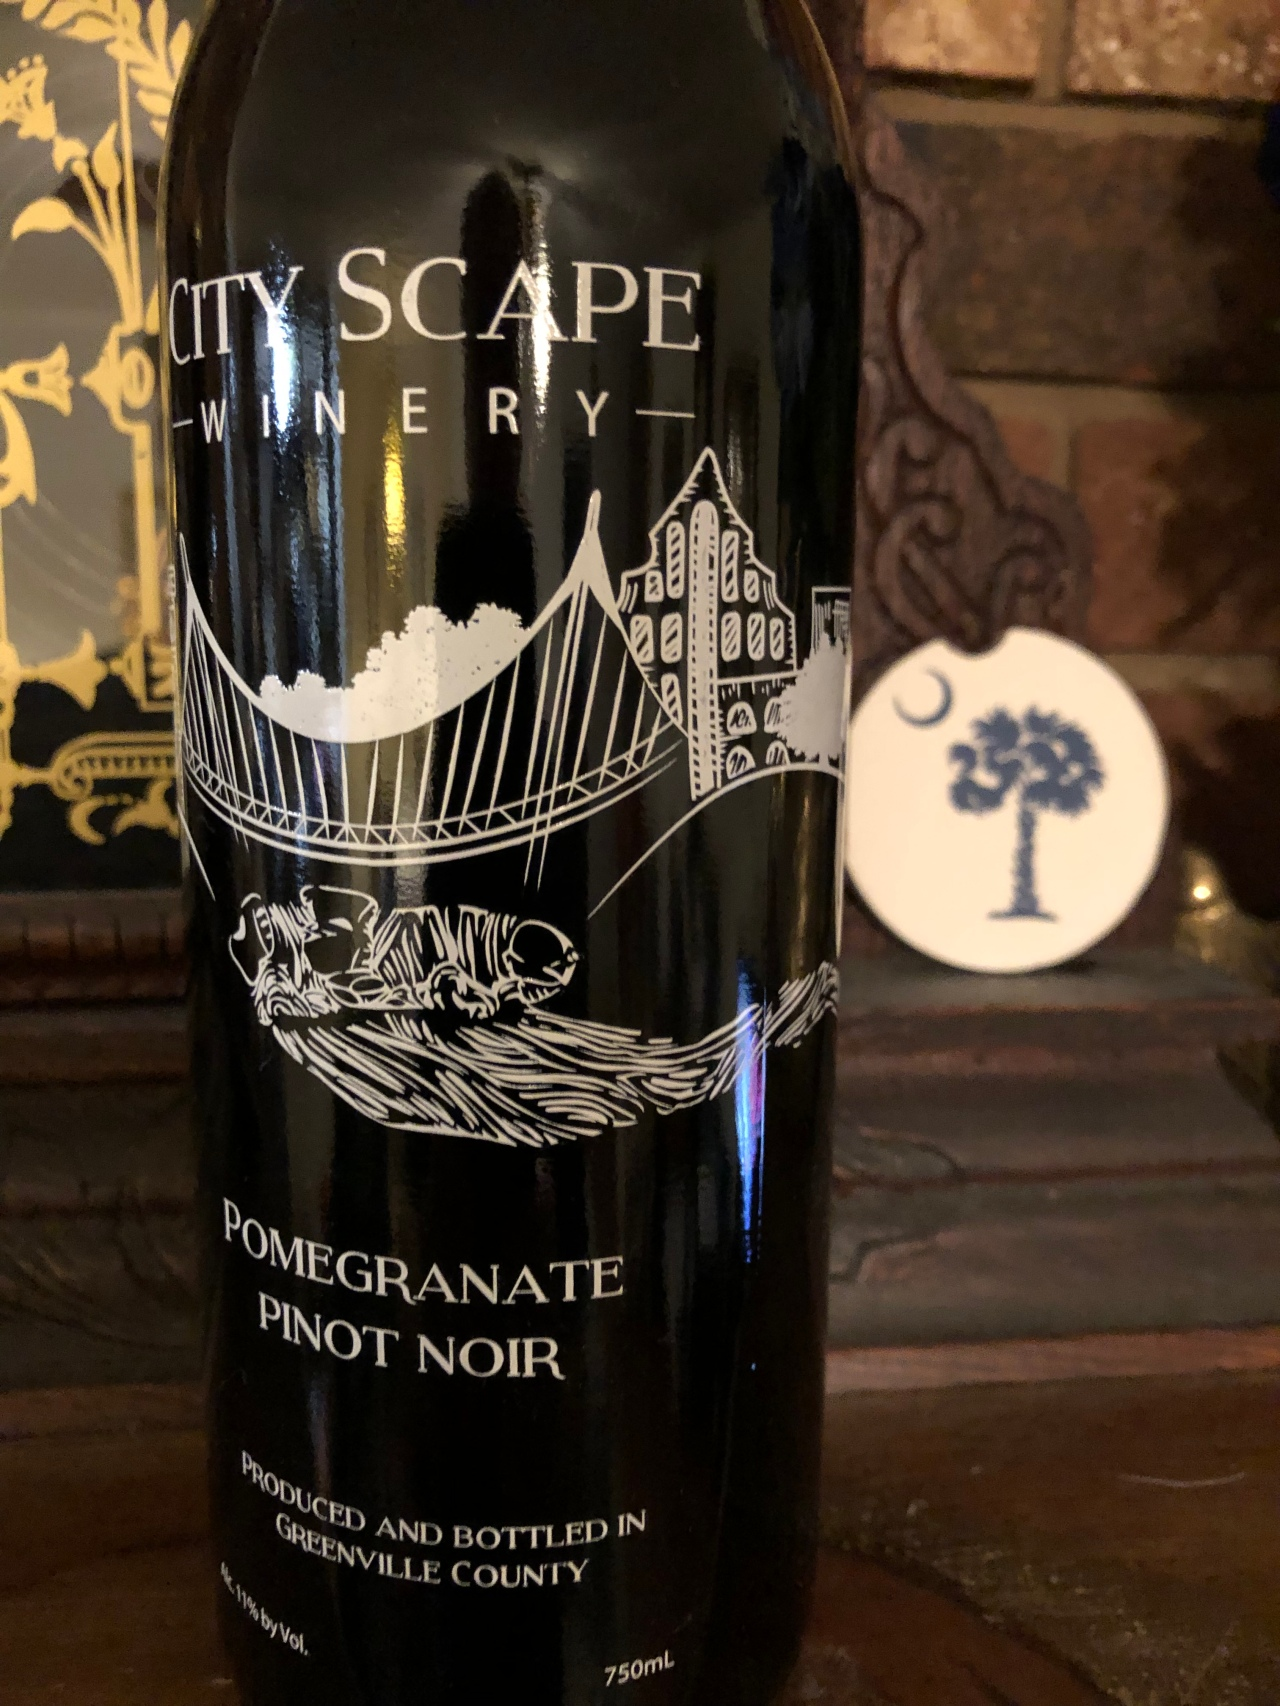 Our Wine Tonight: Pomegranate Pinot Noir – Cityscape Winery